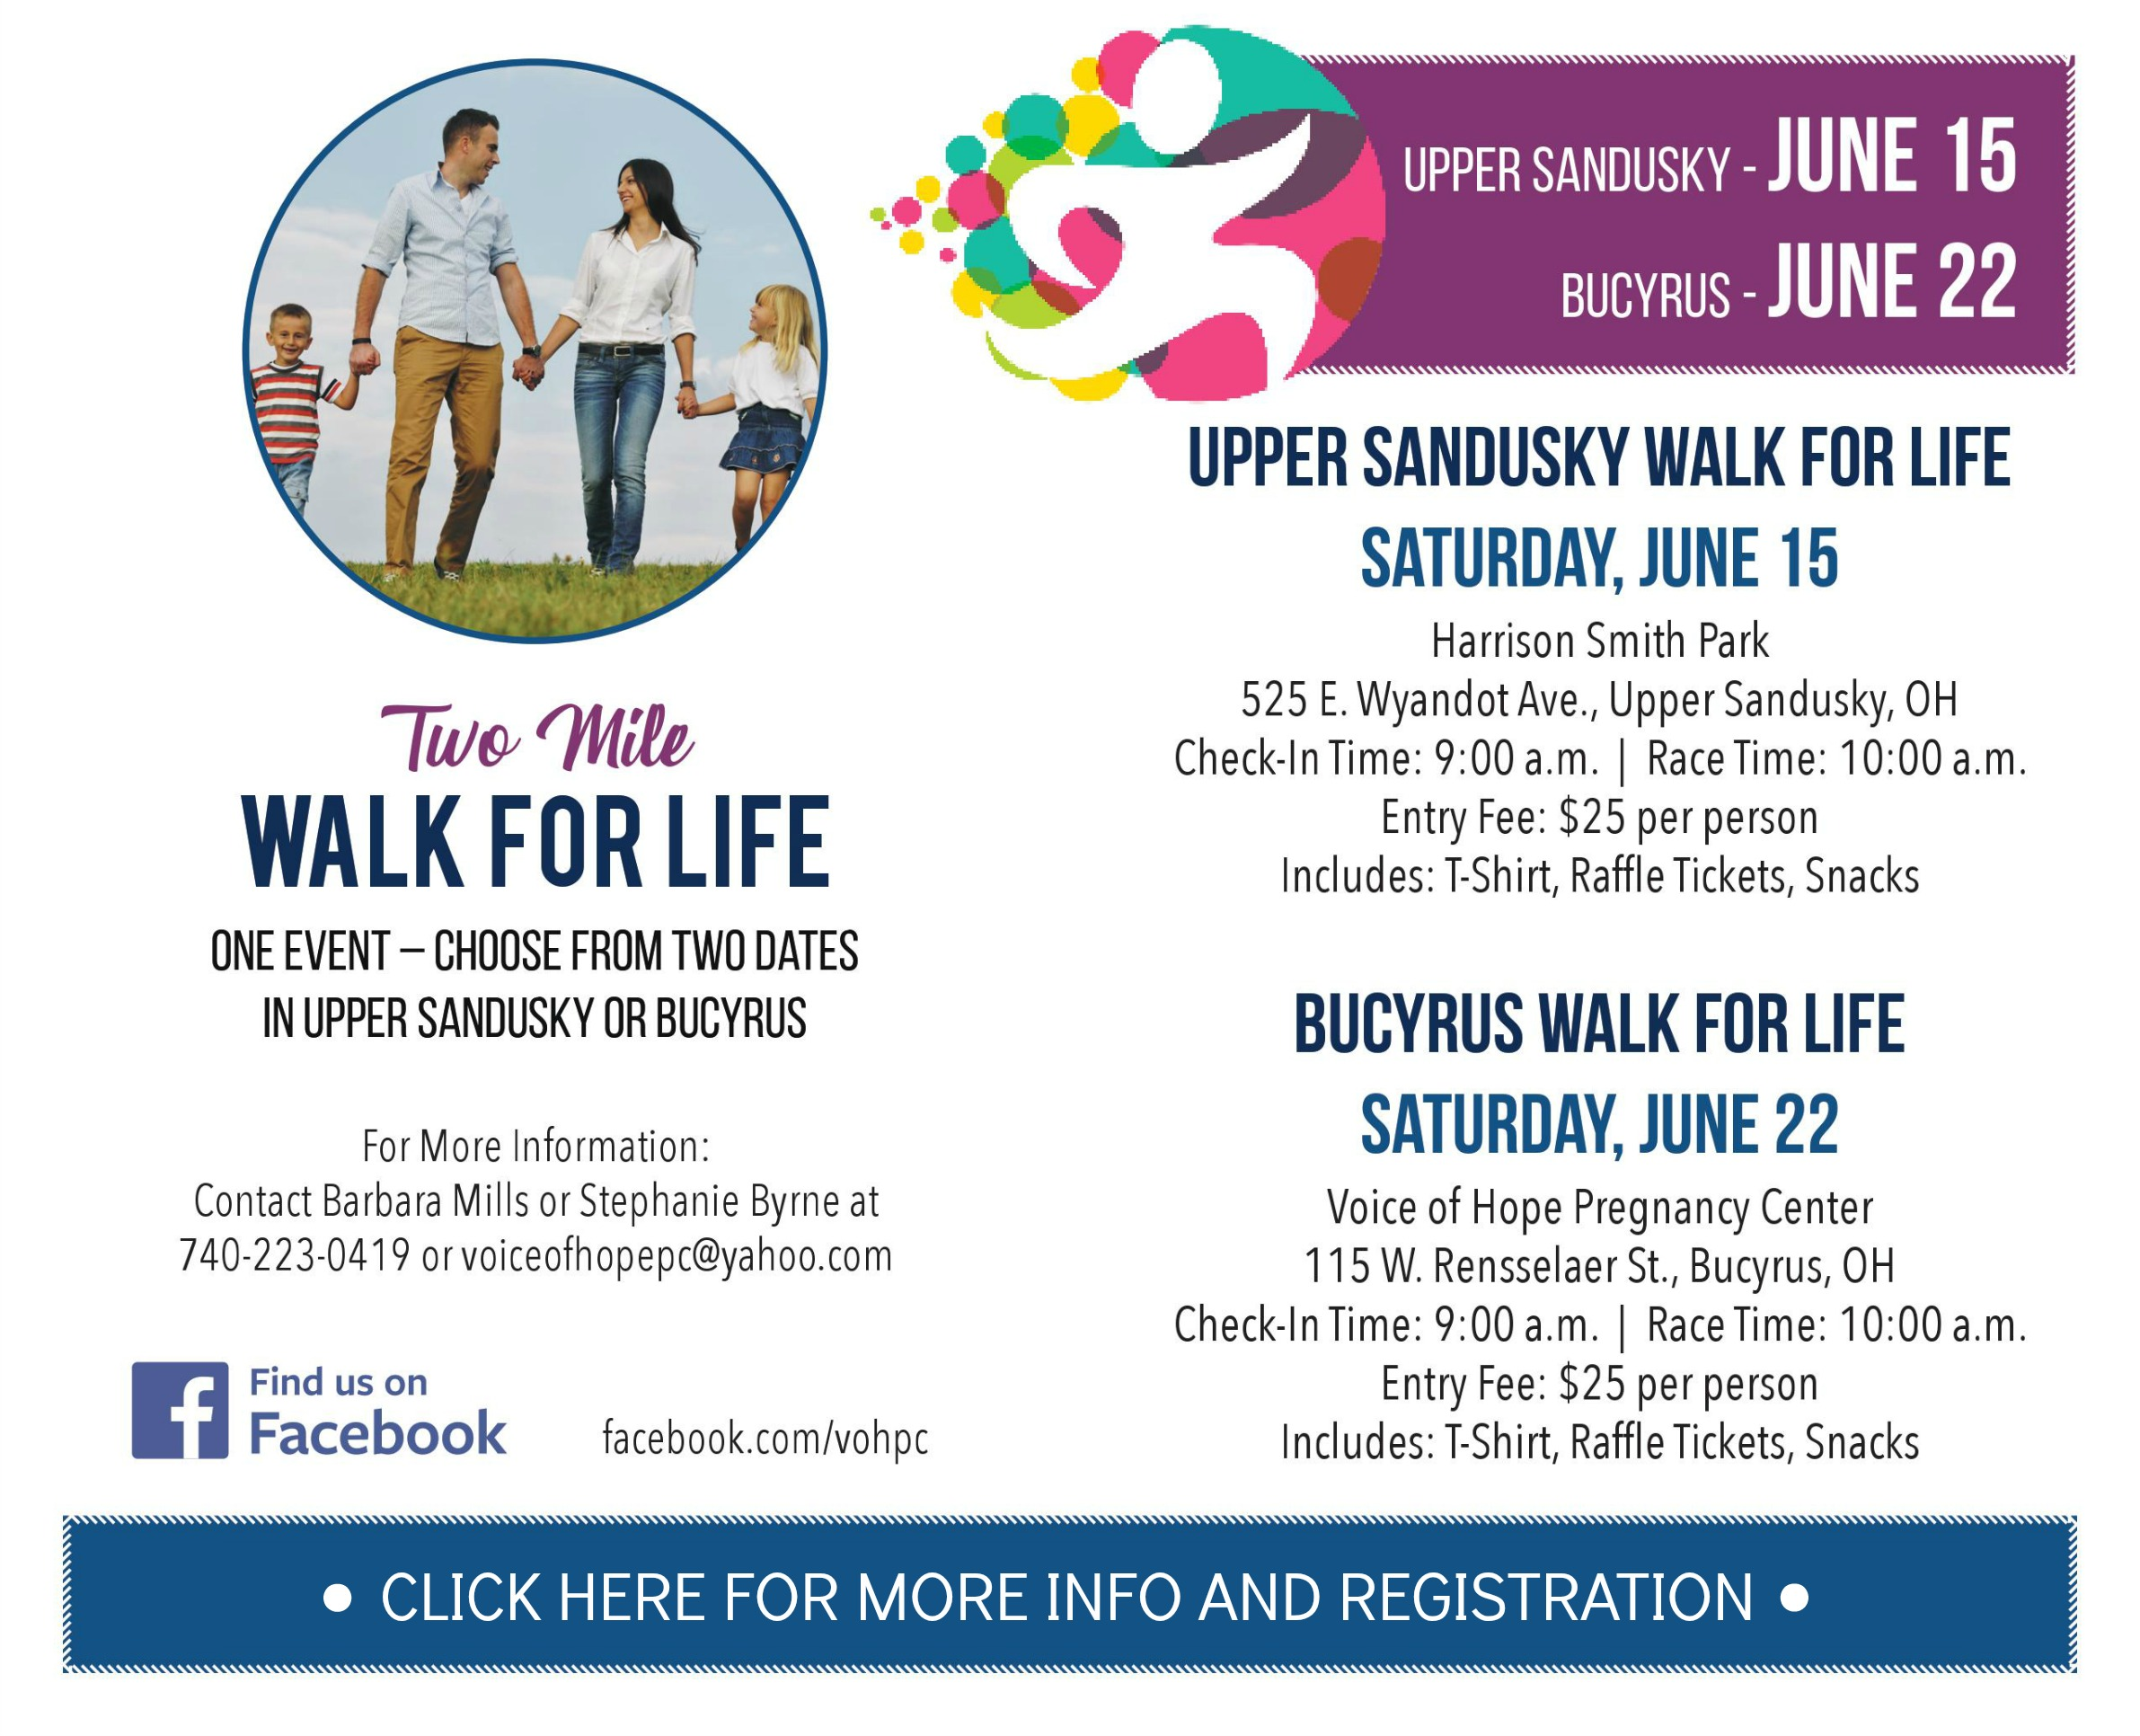 Voice of Hope Walk for Life Bucyrus – Bucyrus Area Chamber